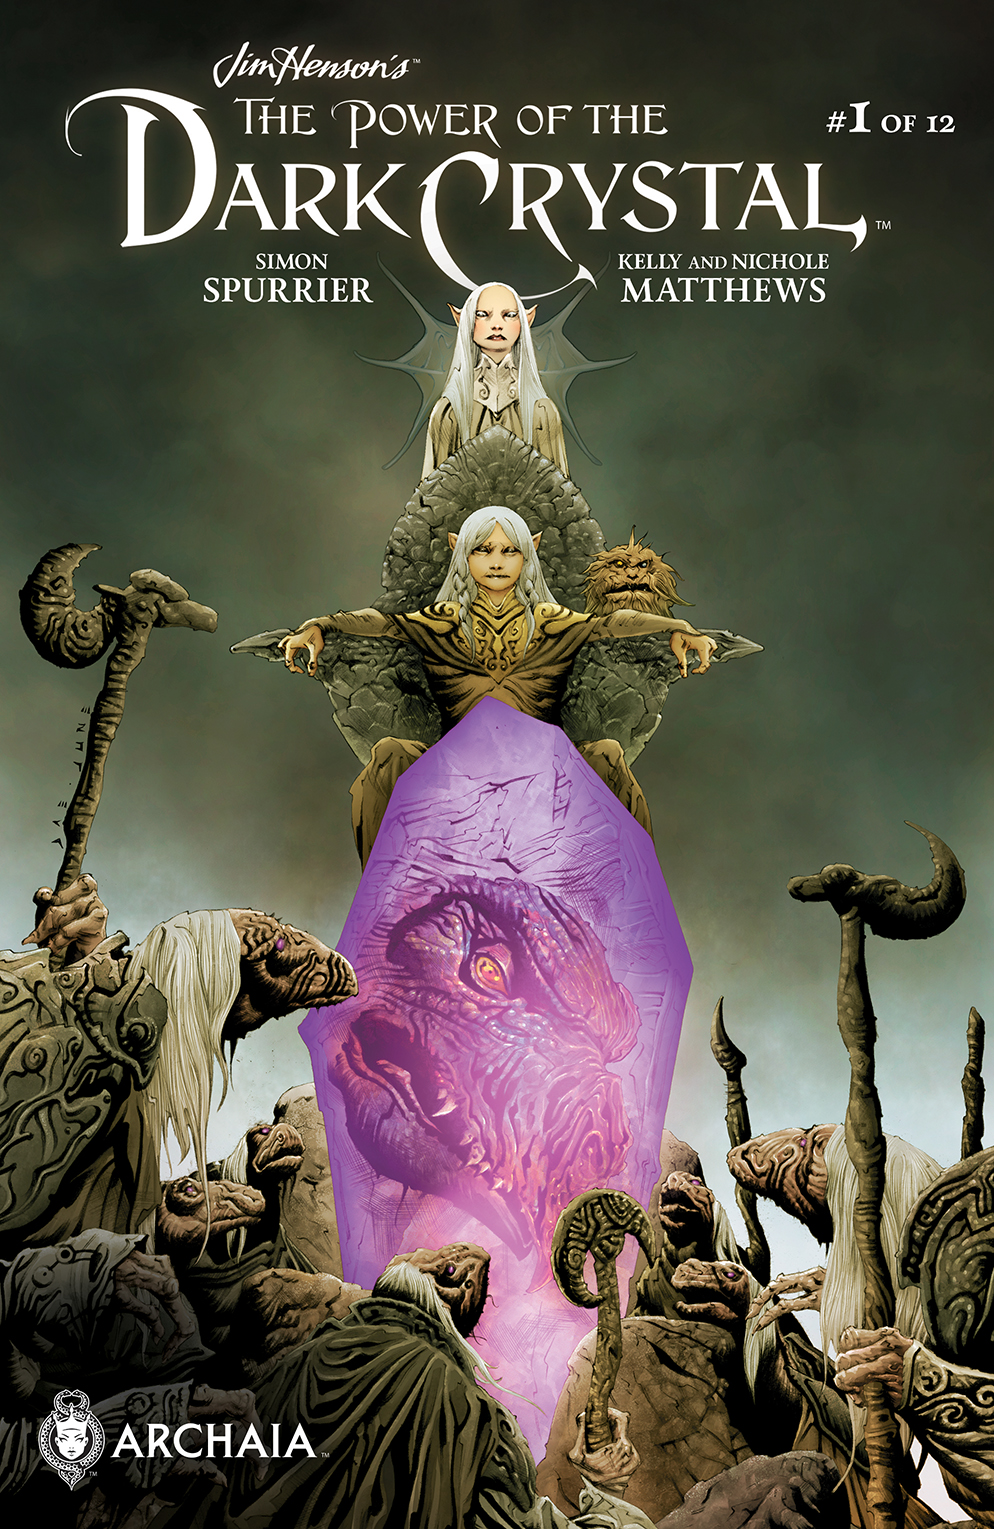 The Power of the Dark Crystal #1 Review